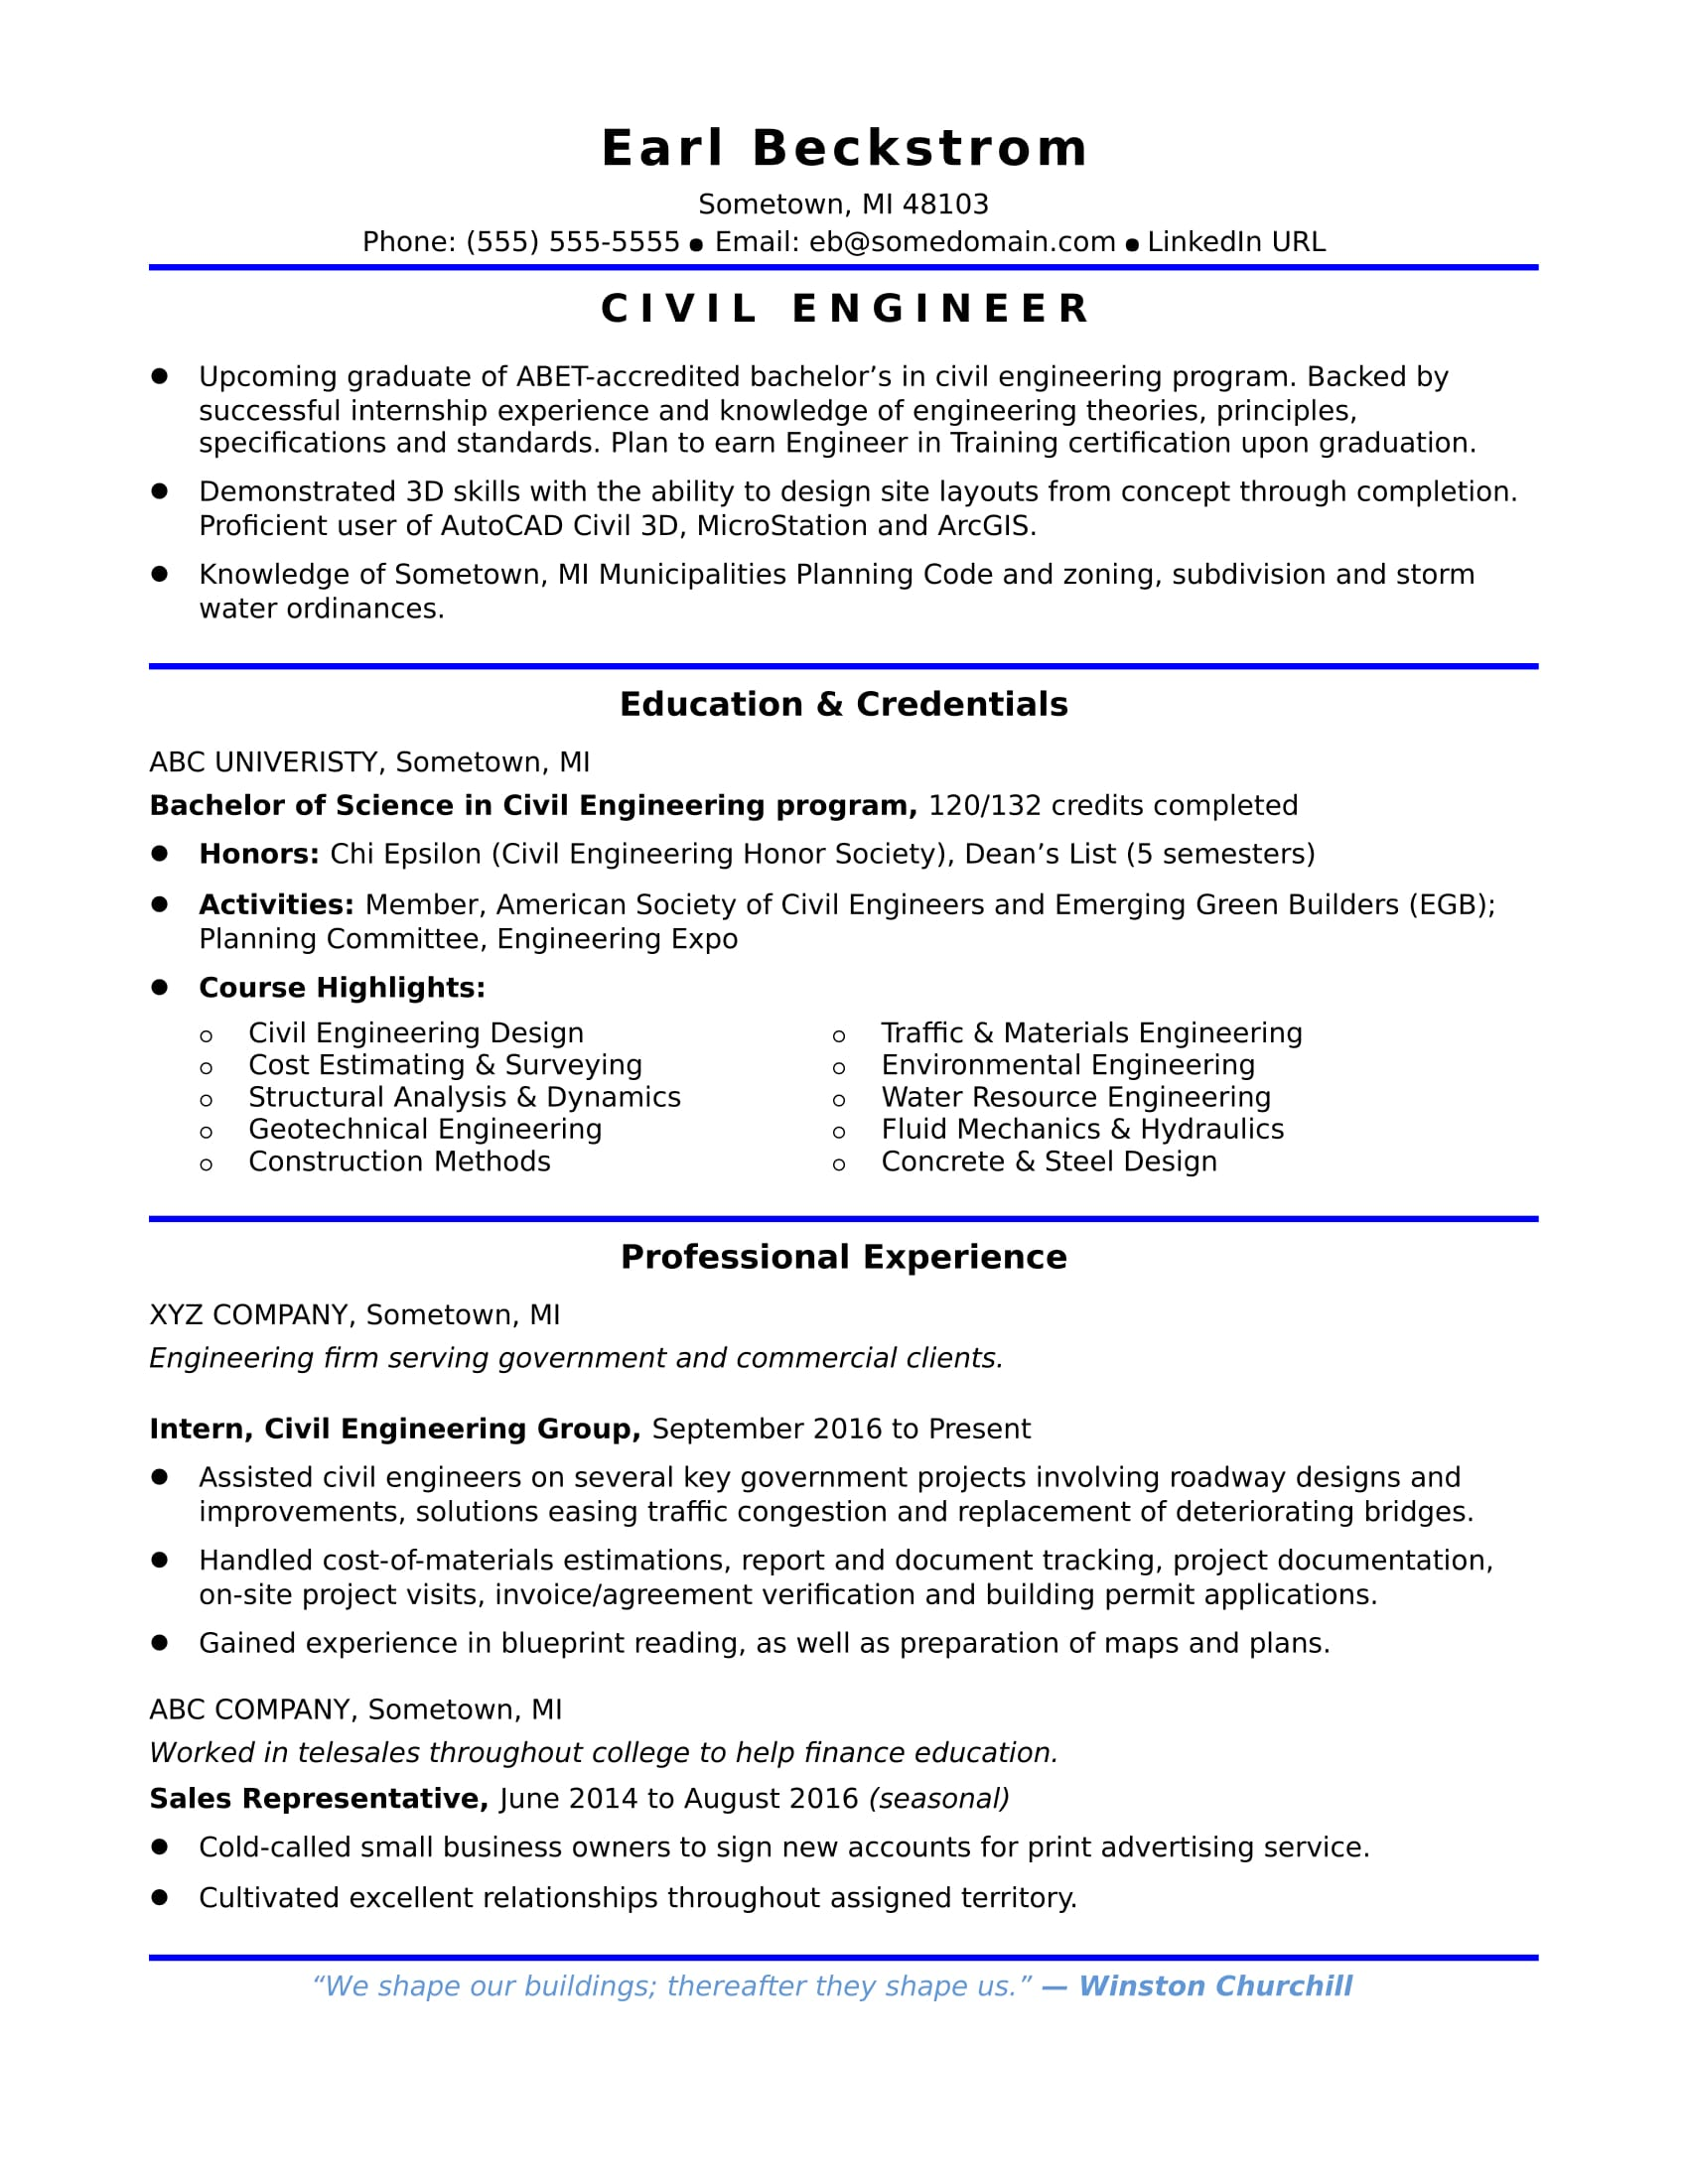 Sample Resume For An Entry Level Civil Engineer  Sample Engineer Resume